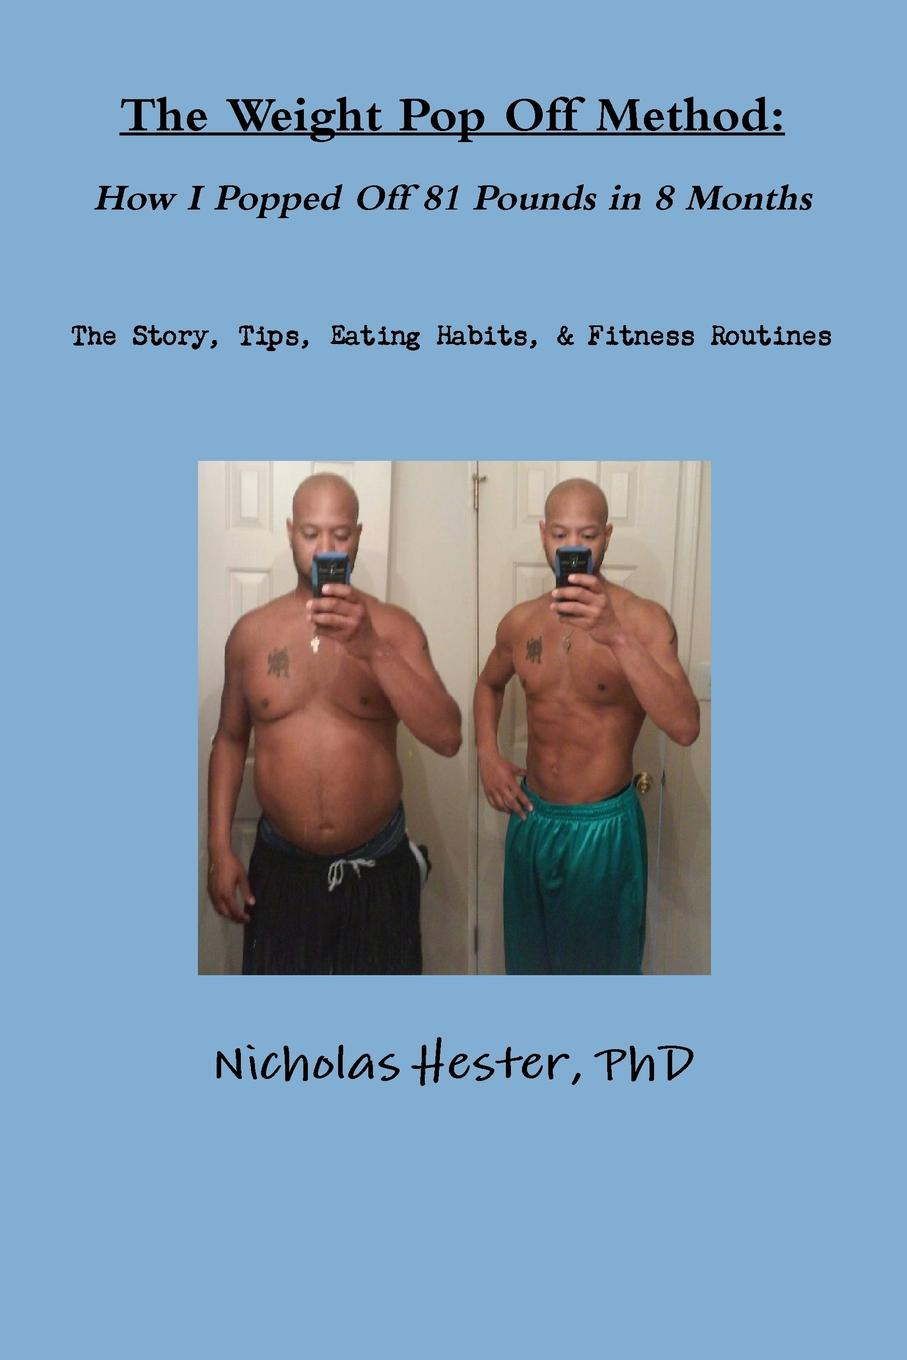 Nicholas Hester The Weight Pop Off Method. How I Popped Off 81 Pounds in 8 Months nicholas hester stop stopping your unstoppableness 1